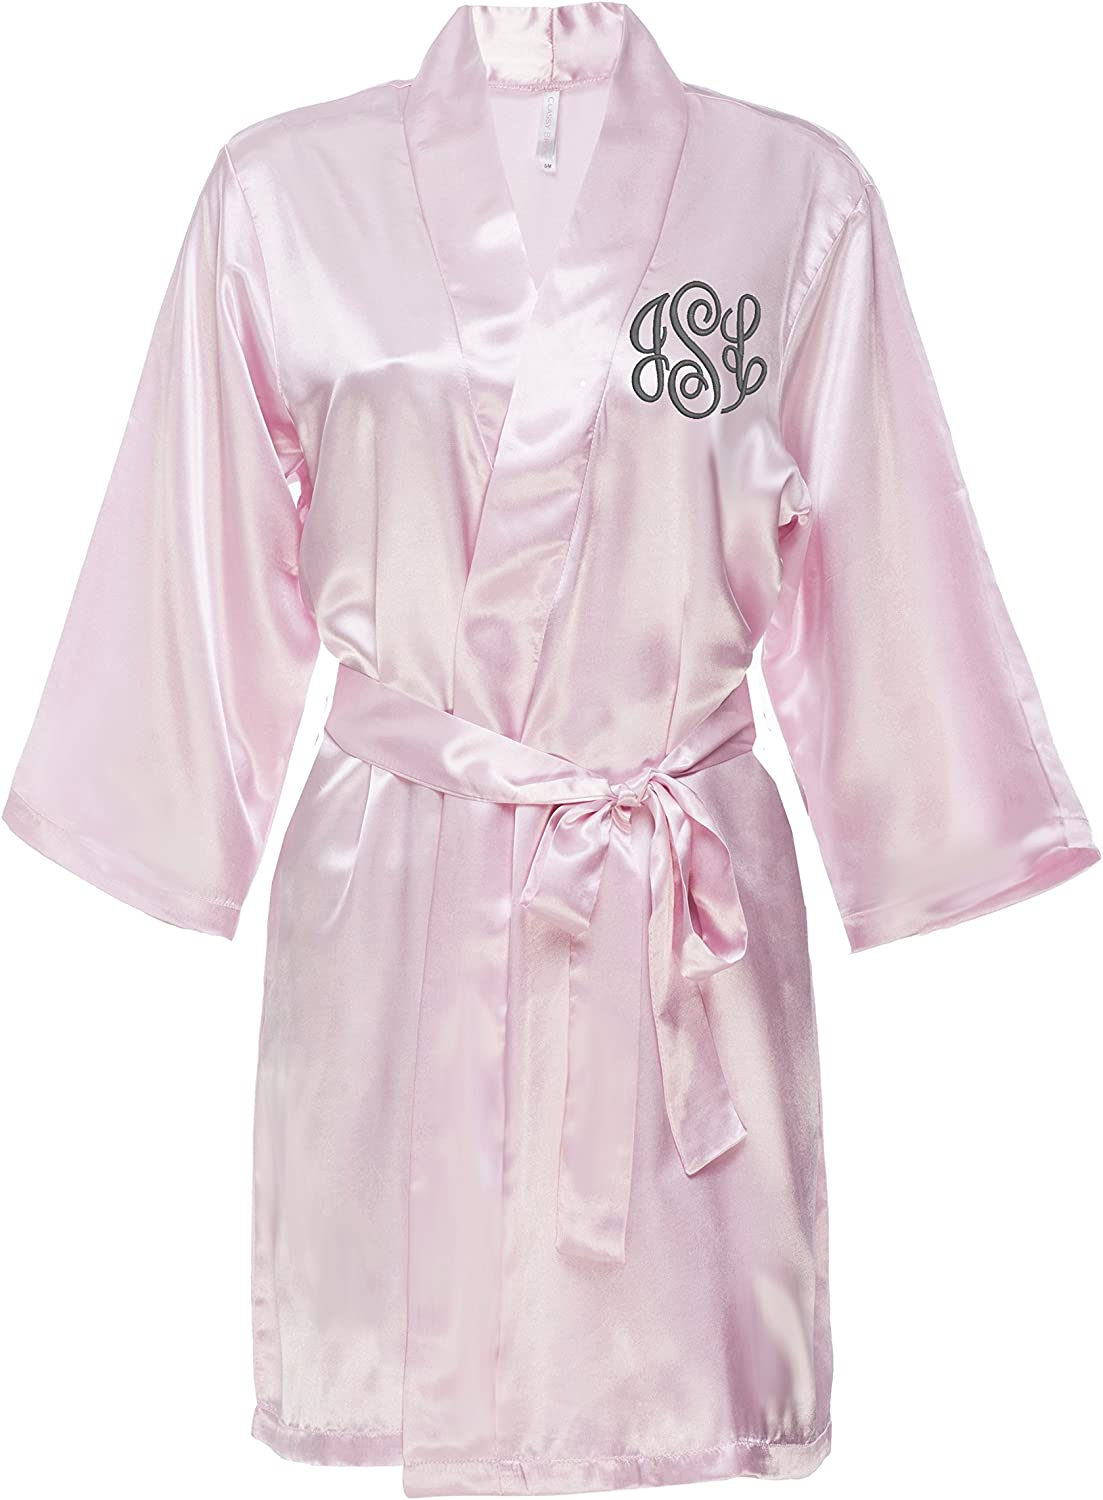 Classy Be super welcome Bride Monogrammed Satin Robe Max 85% OFF Blush Pink -